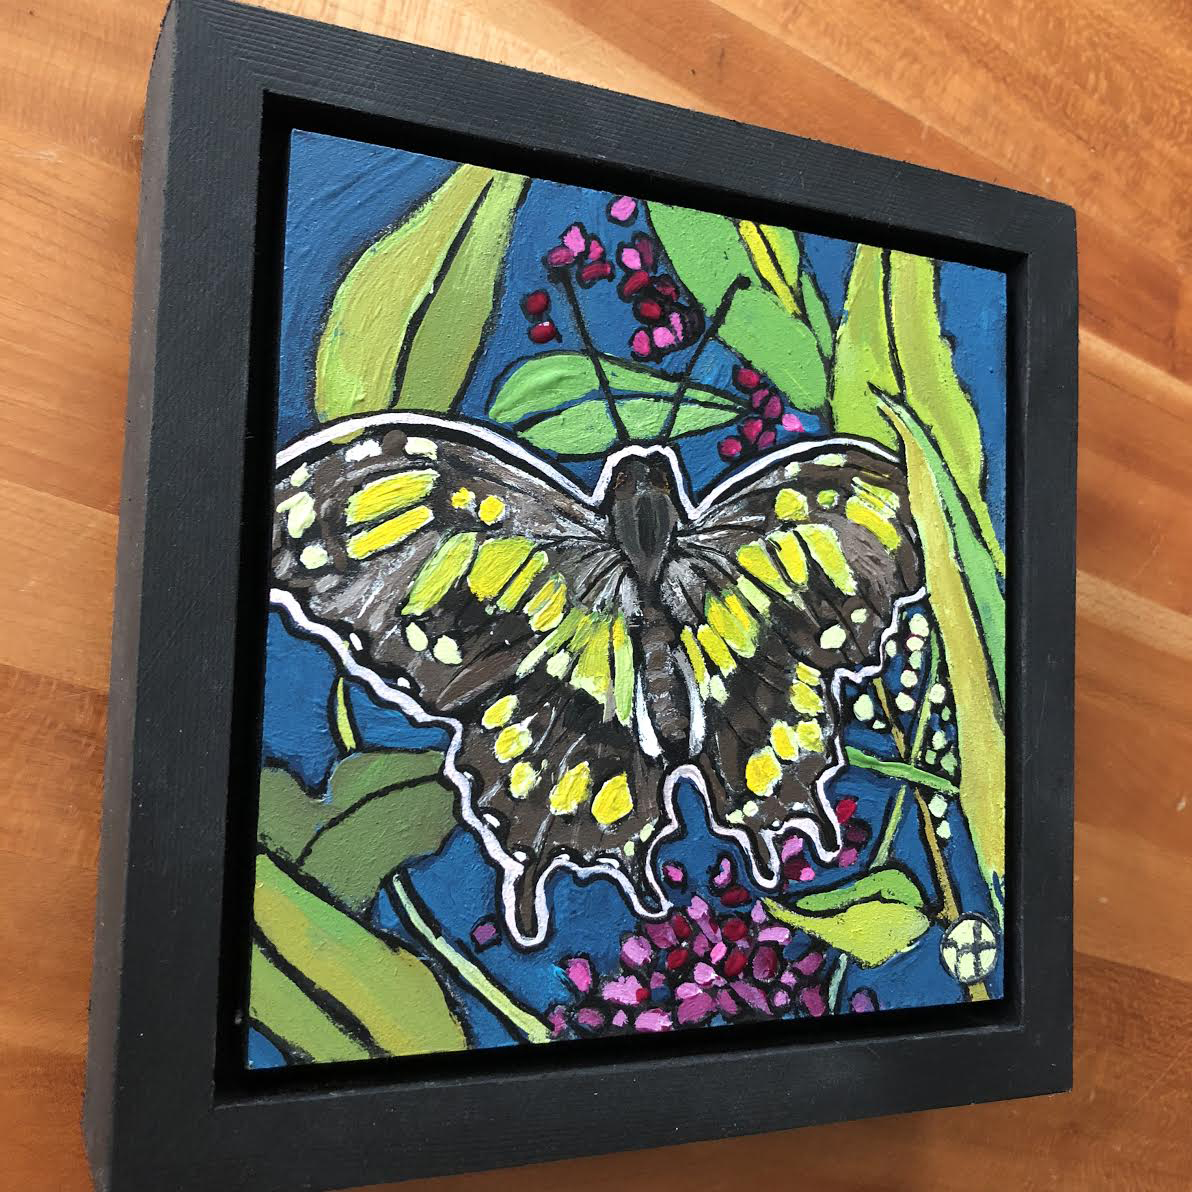 Sold.  Day 11: Malachite butterfly based on a photo sent to me by a wonderful teacher and friend.  acrylic on wood  6.5 x 6.5 inches, 1.5 inch deep wood frame